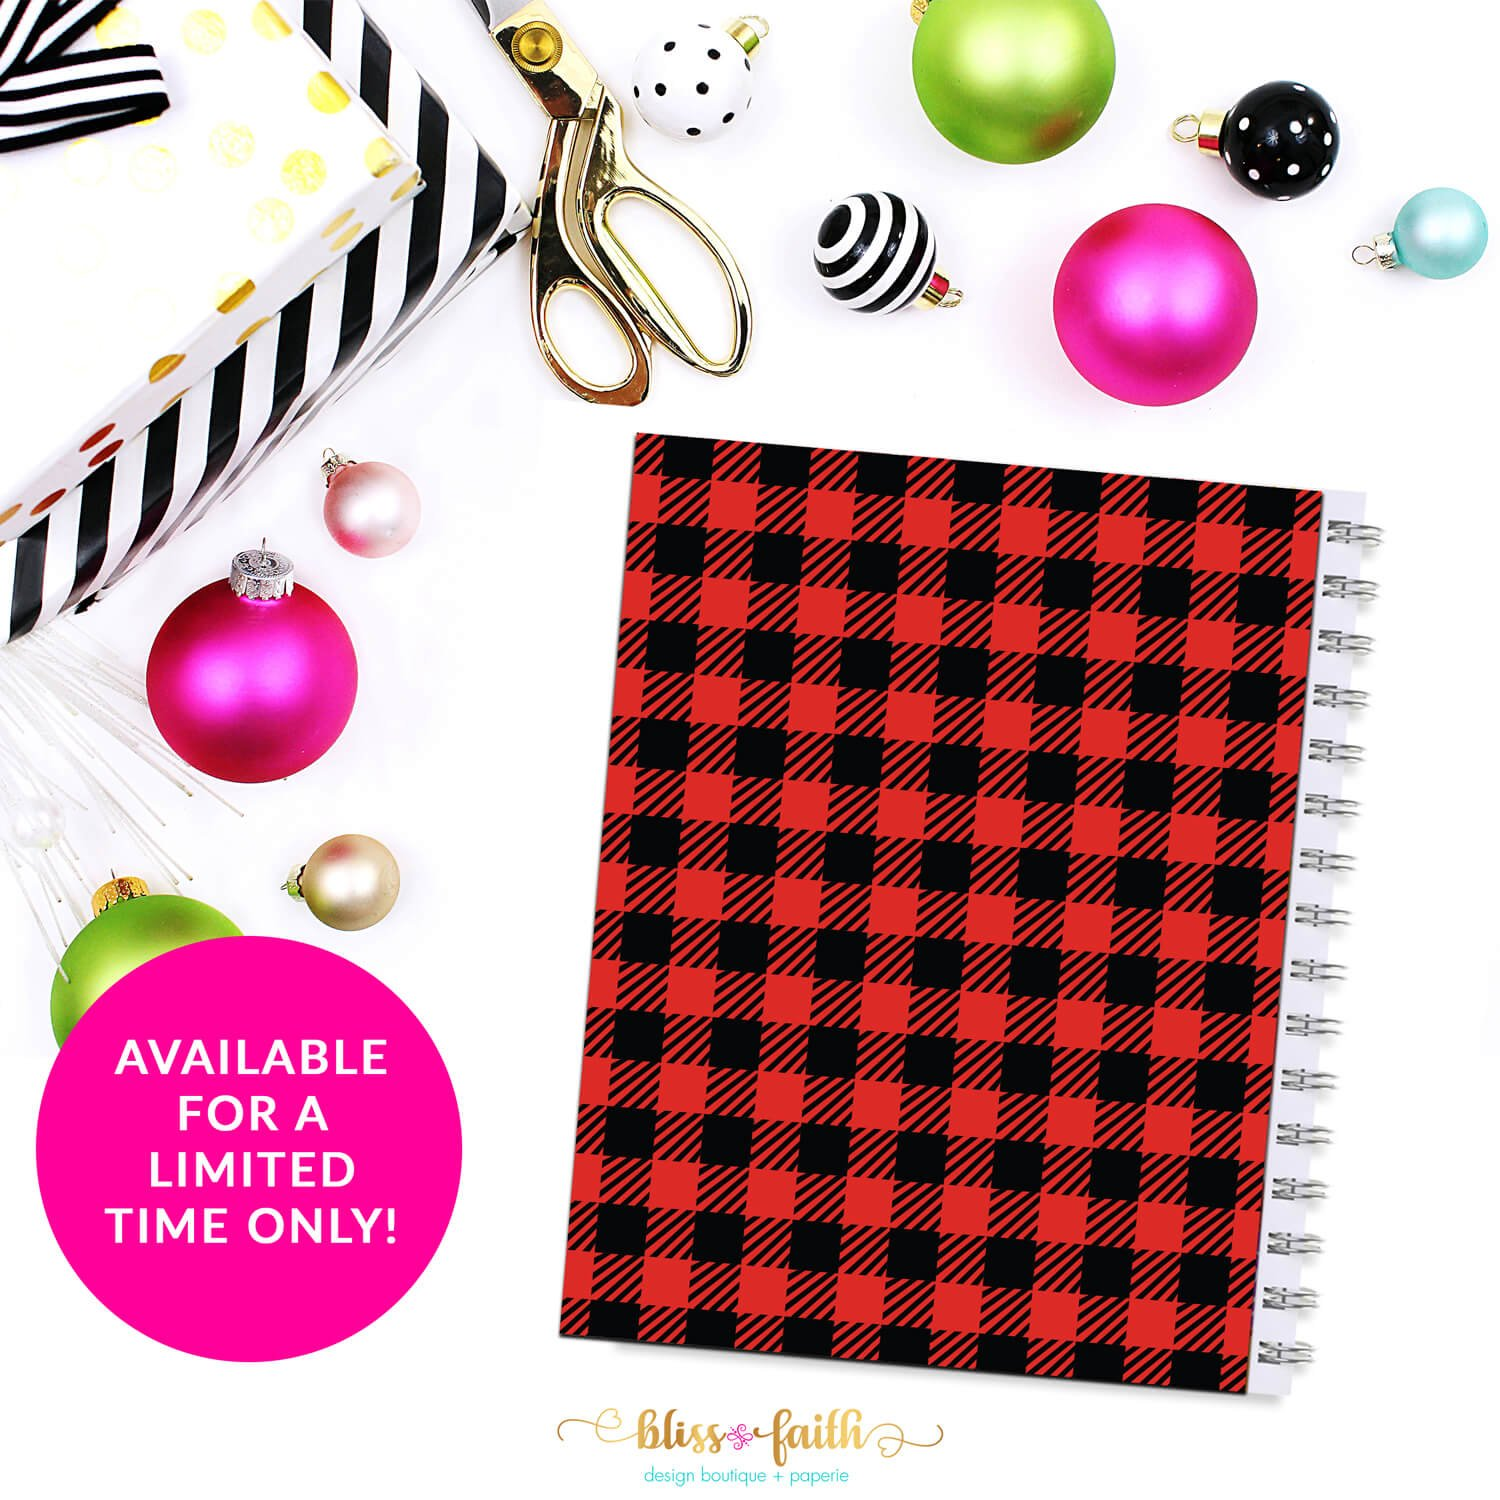 Buffalo Plaid Monogram Planner Cover/Dashboard | shop.blissandfaith.com